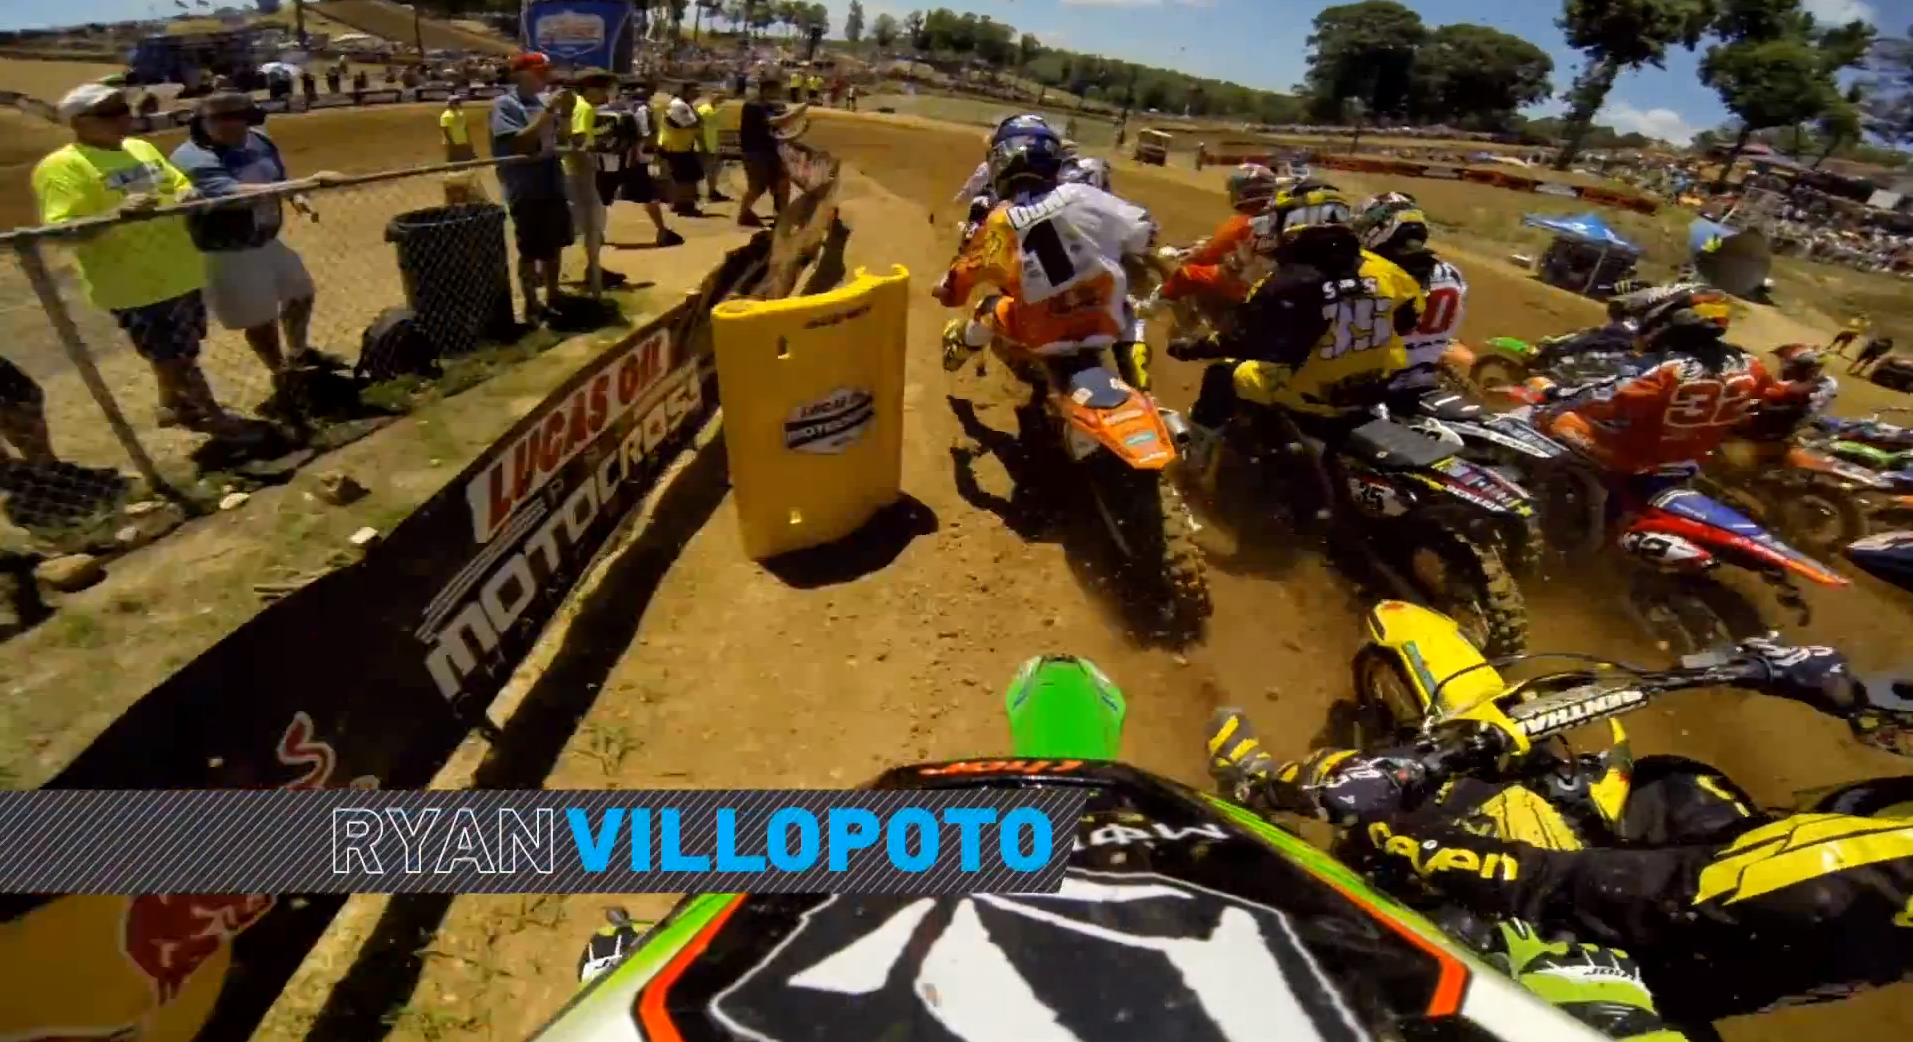 2013 Budds Creek GoPro Footage